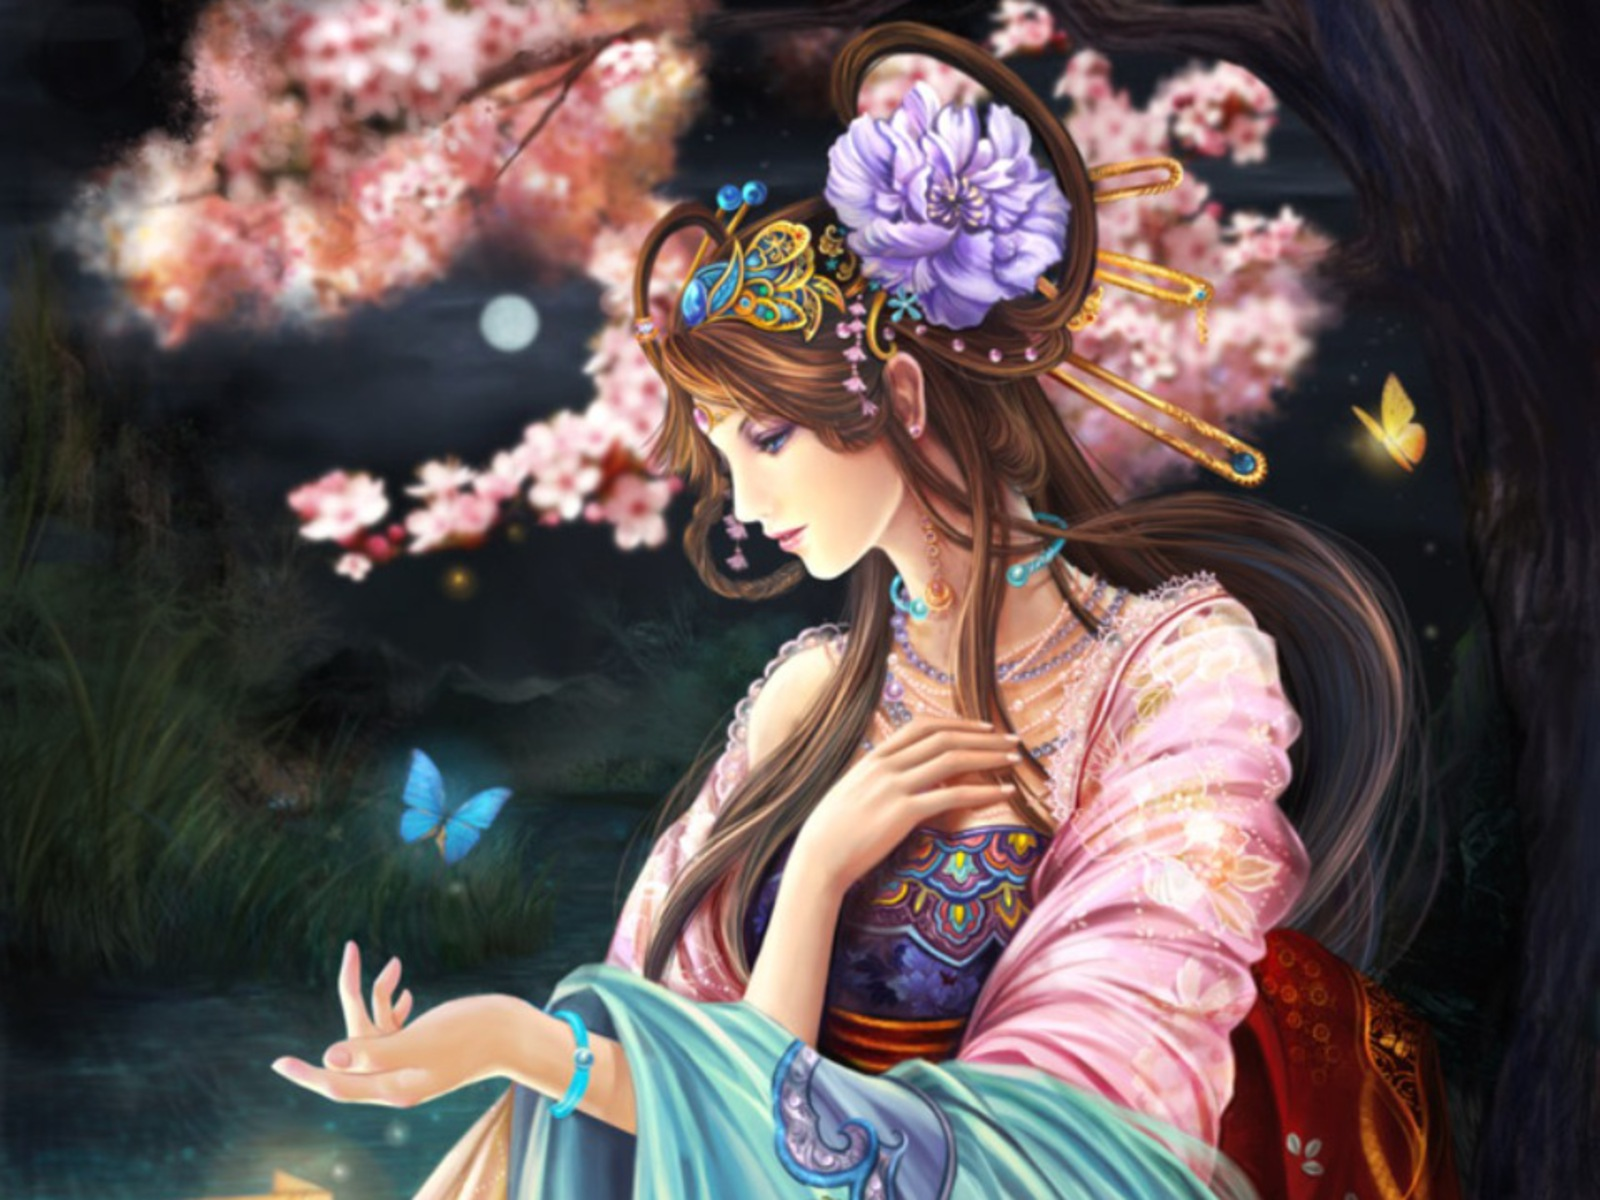 Beautiful anime wallpapers ii stress effect - Beautiful girl anime wallpaper ...